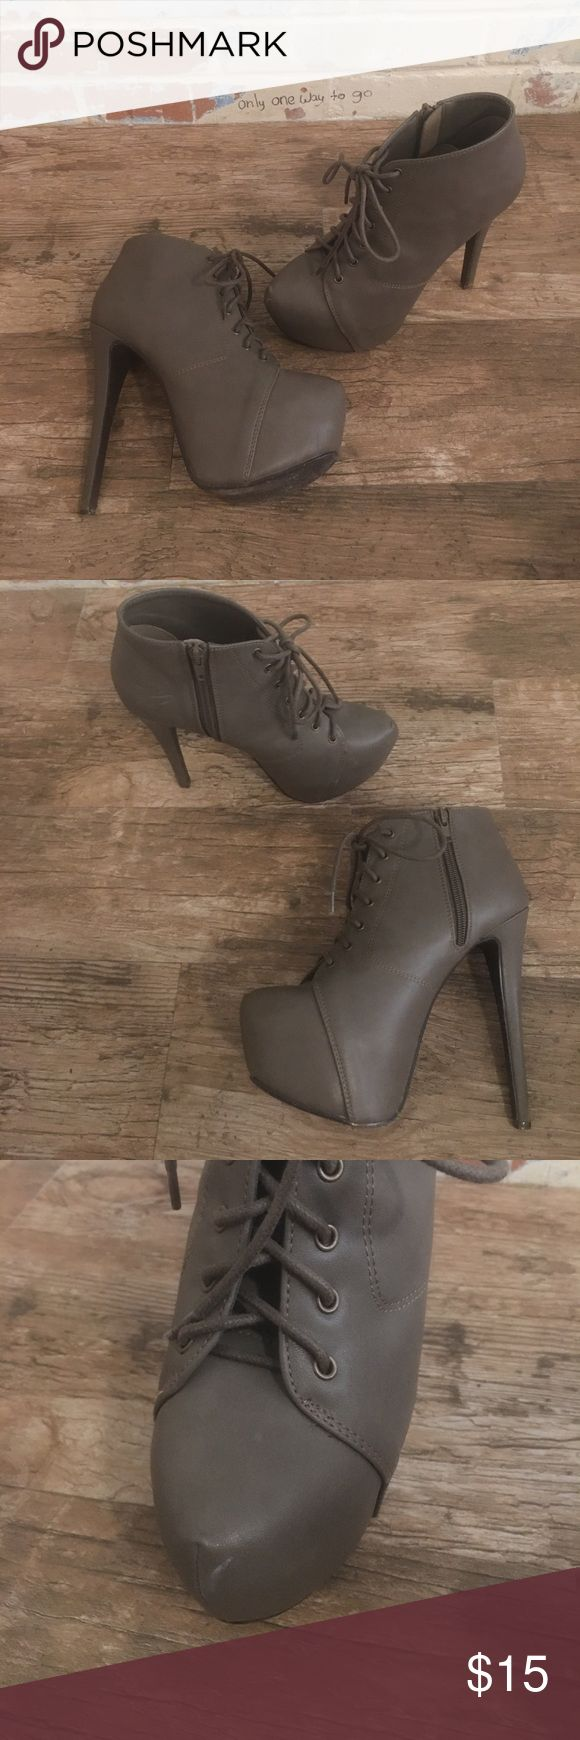 "Women's Charlotte Russe grey booties Like new grey booties are ski high having a 4"" heel and 2"" platform under the toe. They zip up on the side and actually do lace up in the front, not just for decoration. Foot feels comfortably secure however you prefer to adjust it. The only marks on these shoes is due to normal wear and shown in the pictures. Charlotte Russe Shoes Ankle Boots & Booties"